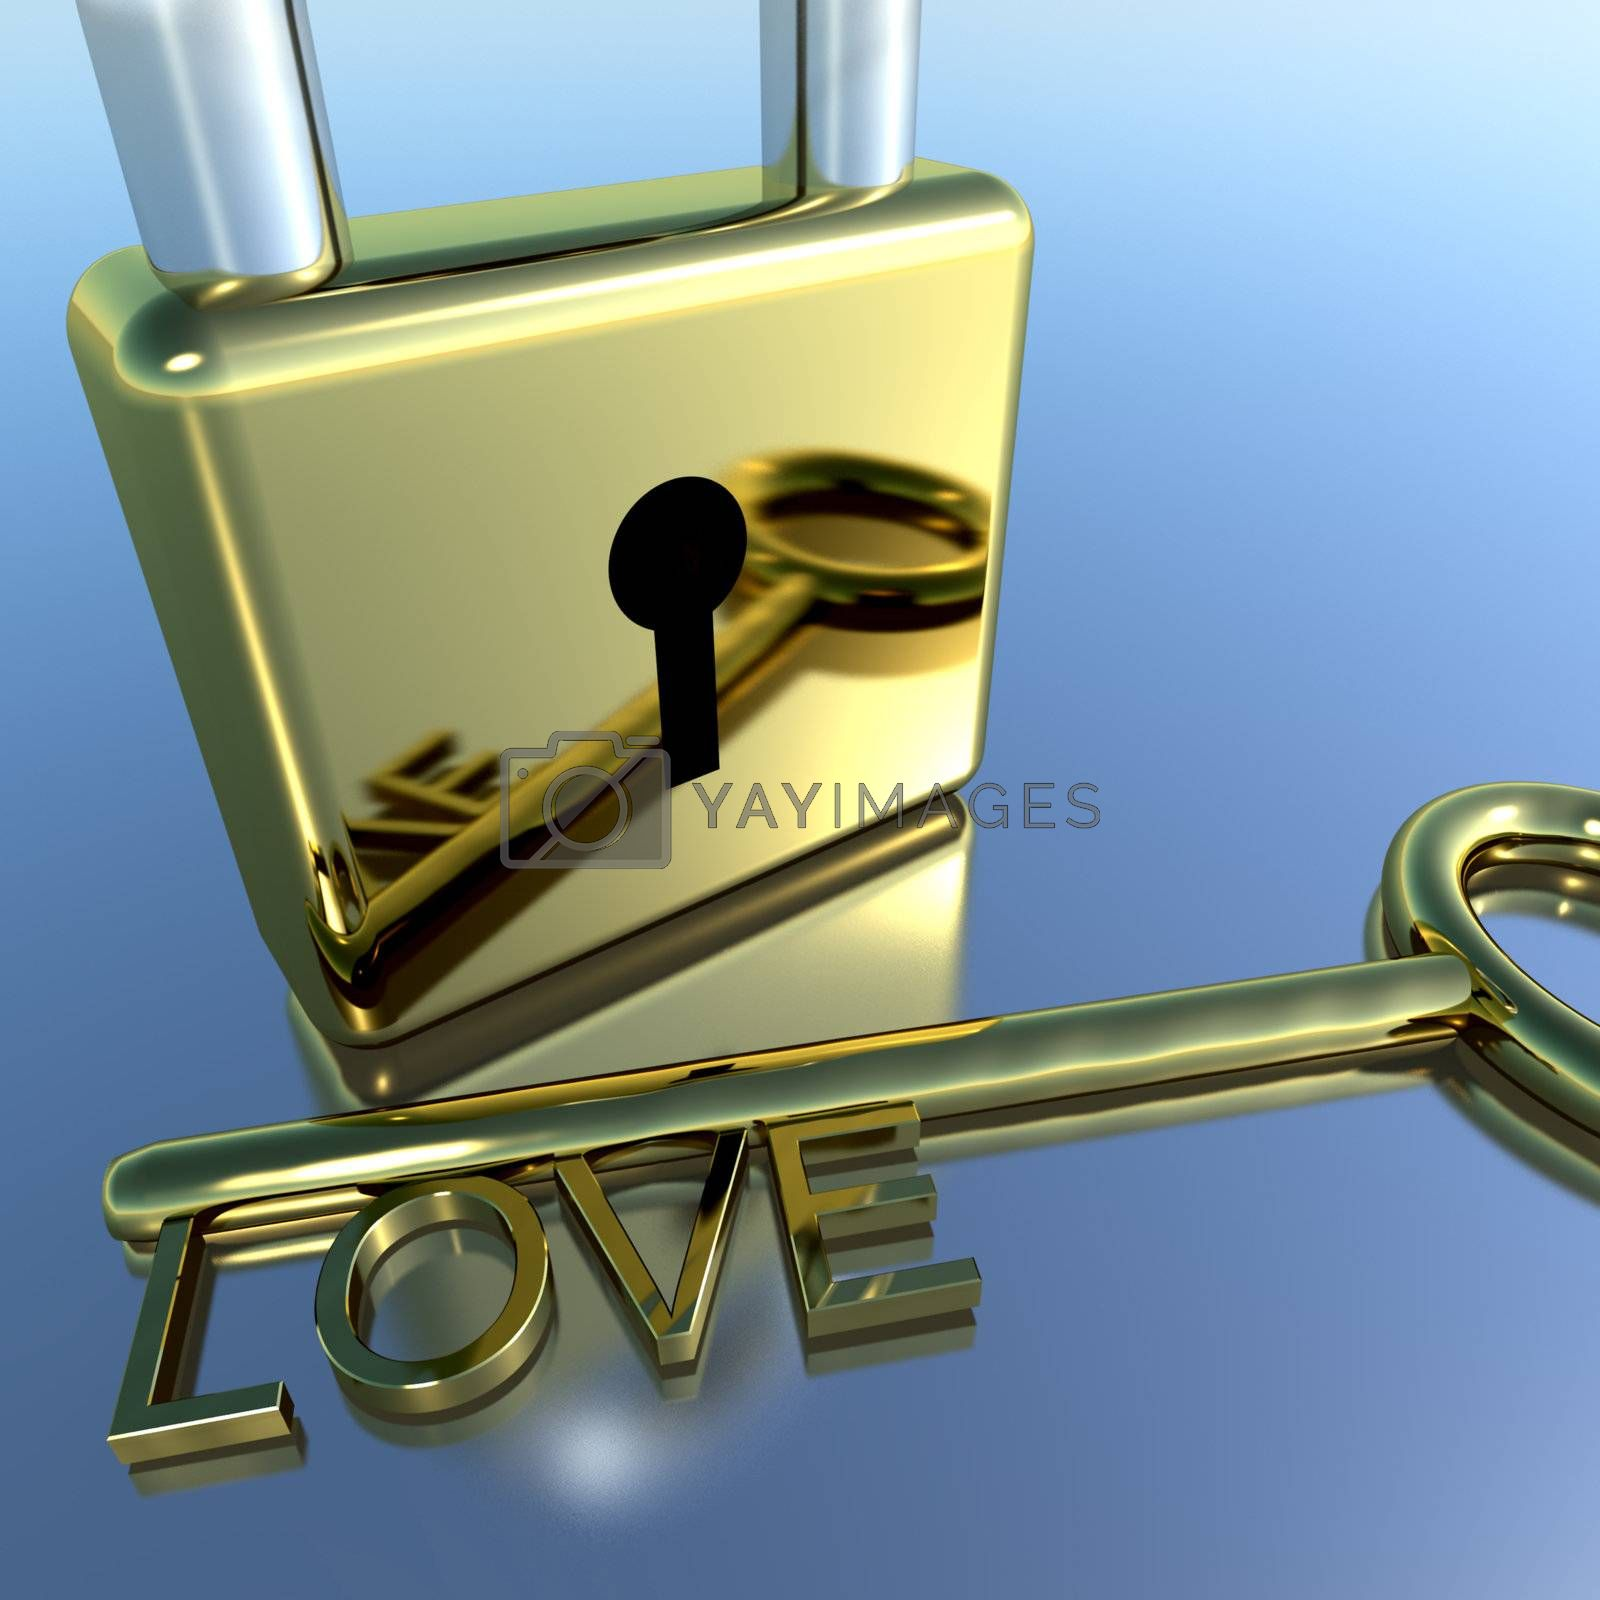 Padlock With Love Key Showing Romance Valentines Or Lovers